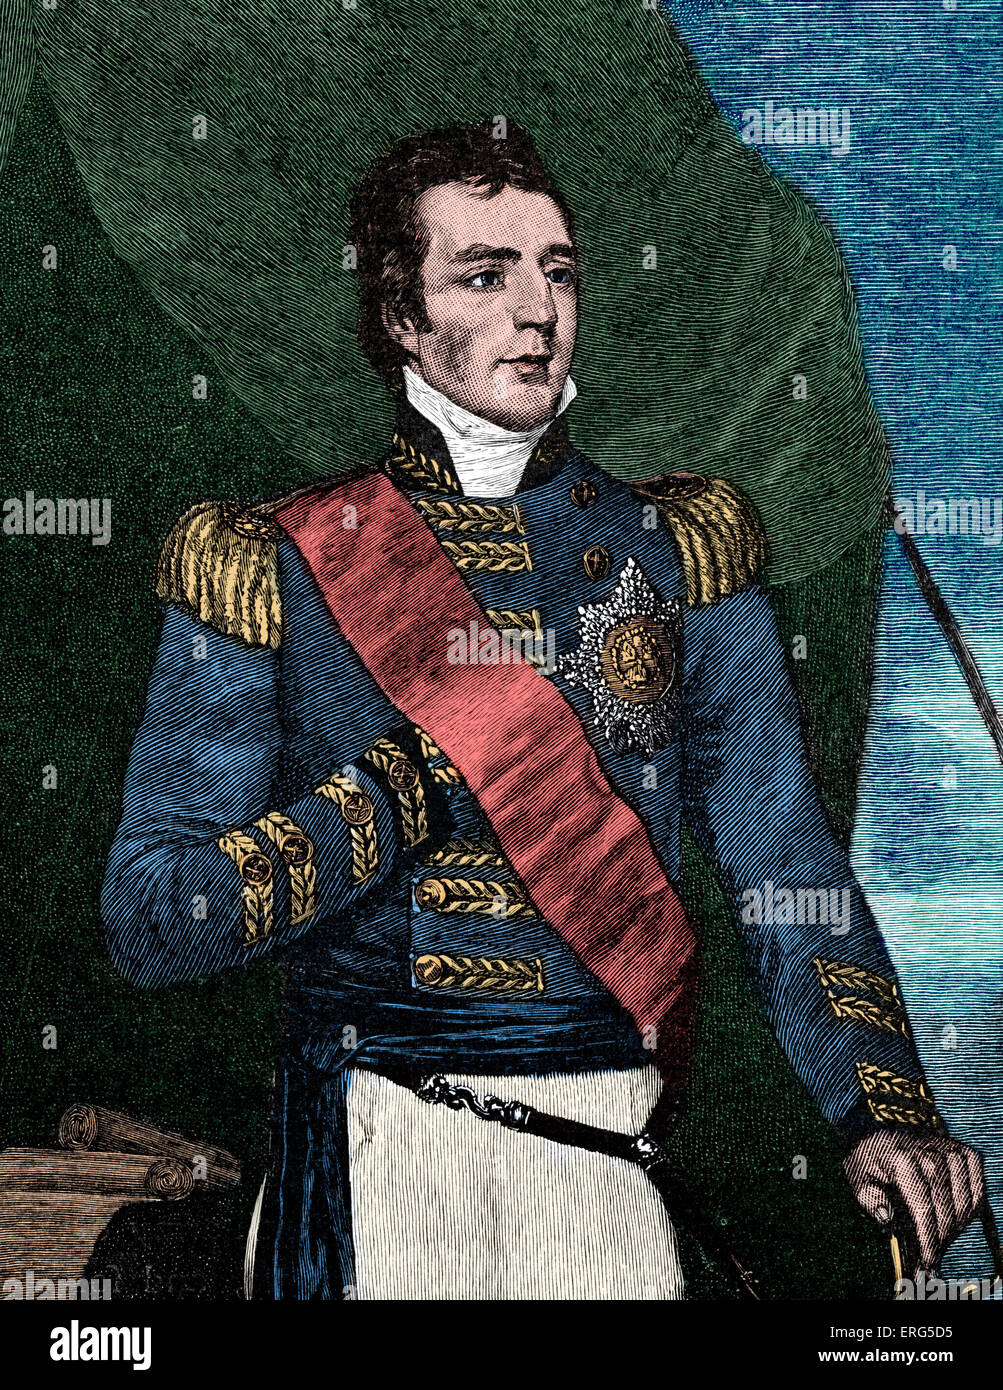 Major general Arthur Wellesley, afterwards Duke of Wellington. Anglo-Irish  soldier and statesman,  leading military - Stock Image